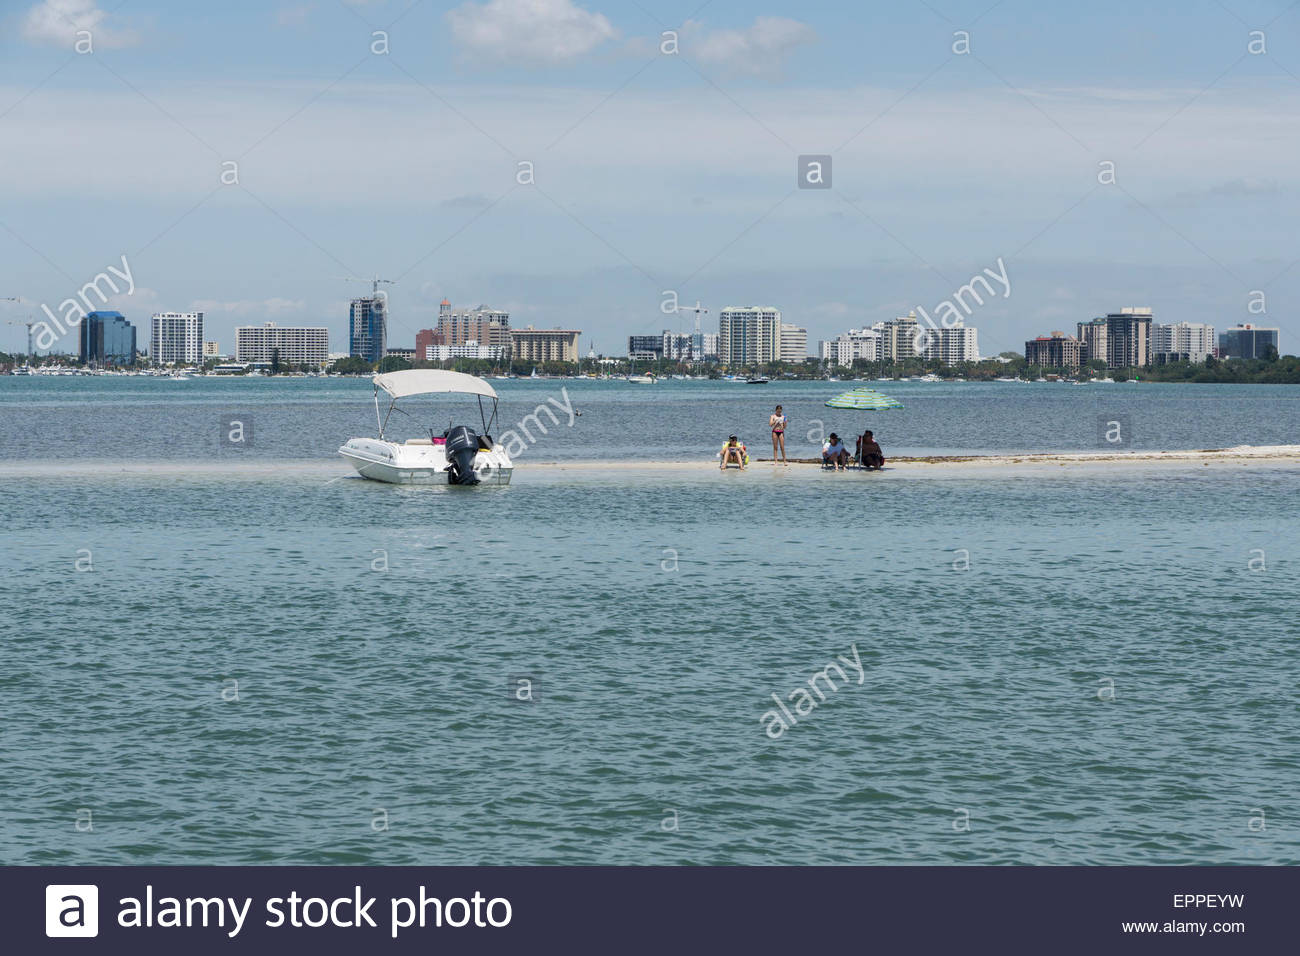 Boaters relax on a sand bar in Sarasota Bay at Sarasota, Florida - Stock Image